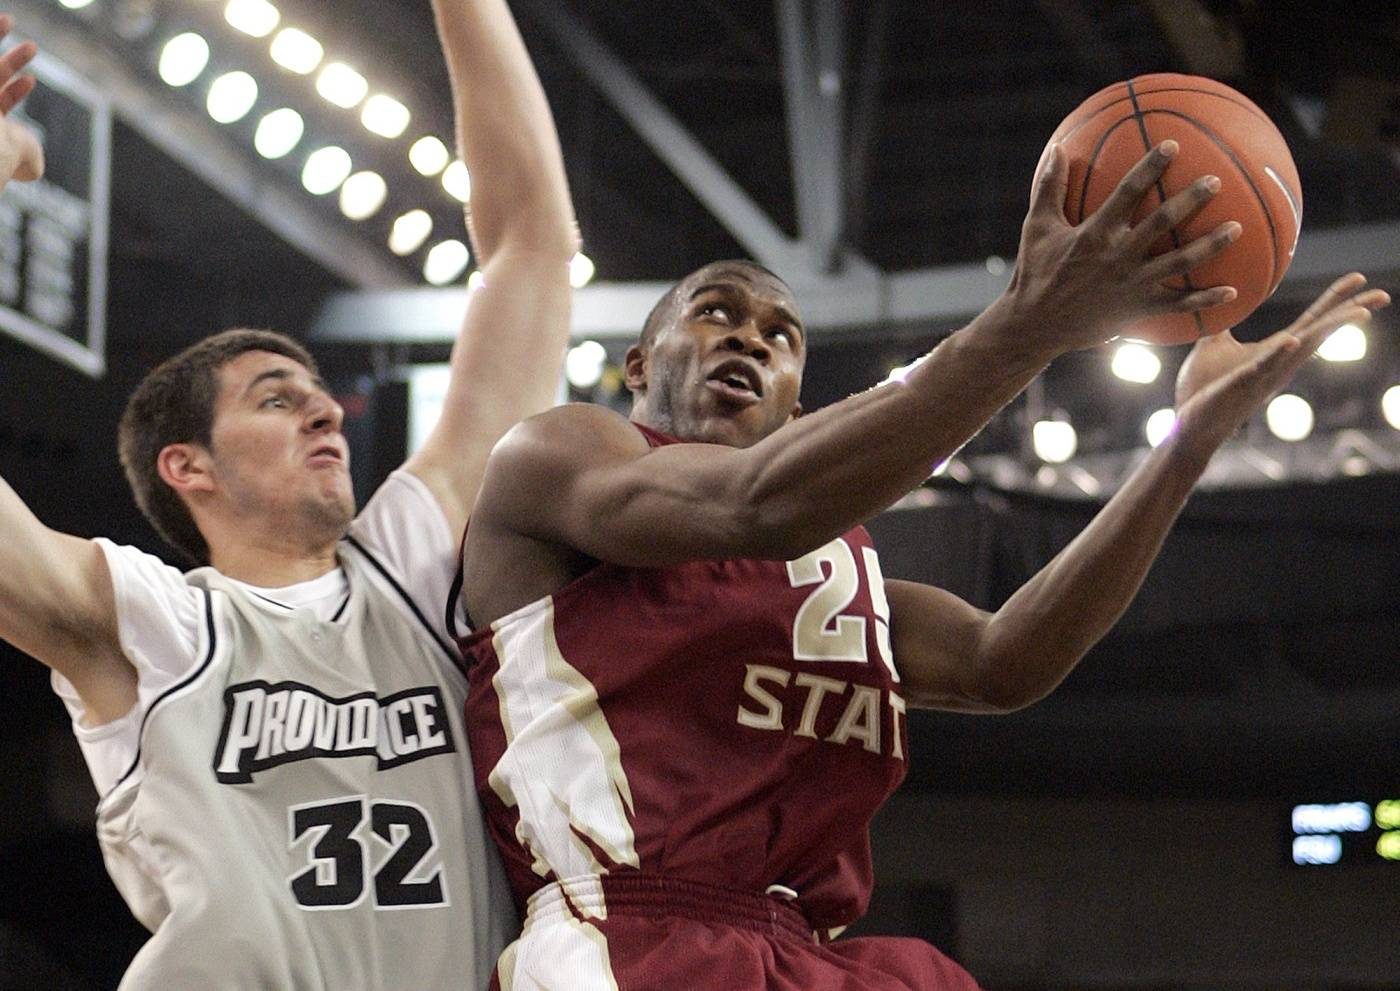 Florida State's Jason Rich goes up to shoot against Providence's Randall Hanke in the second half.